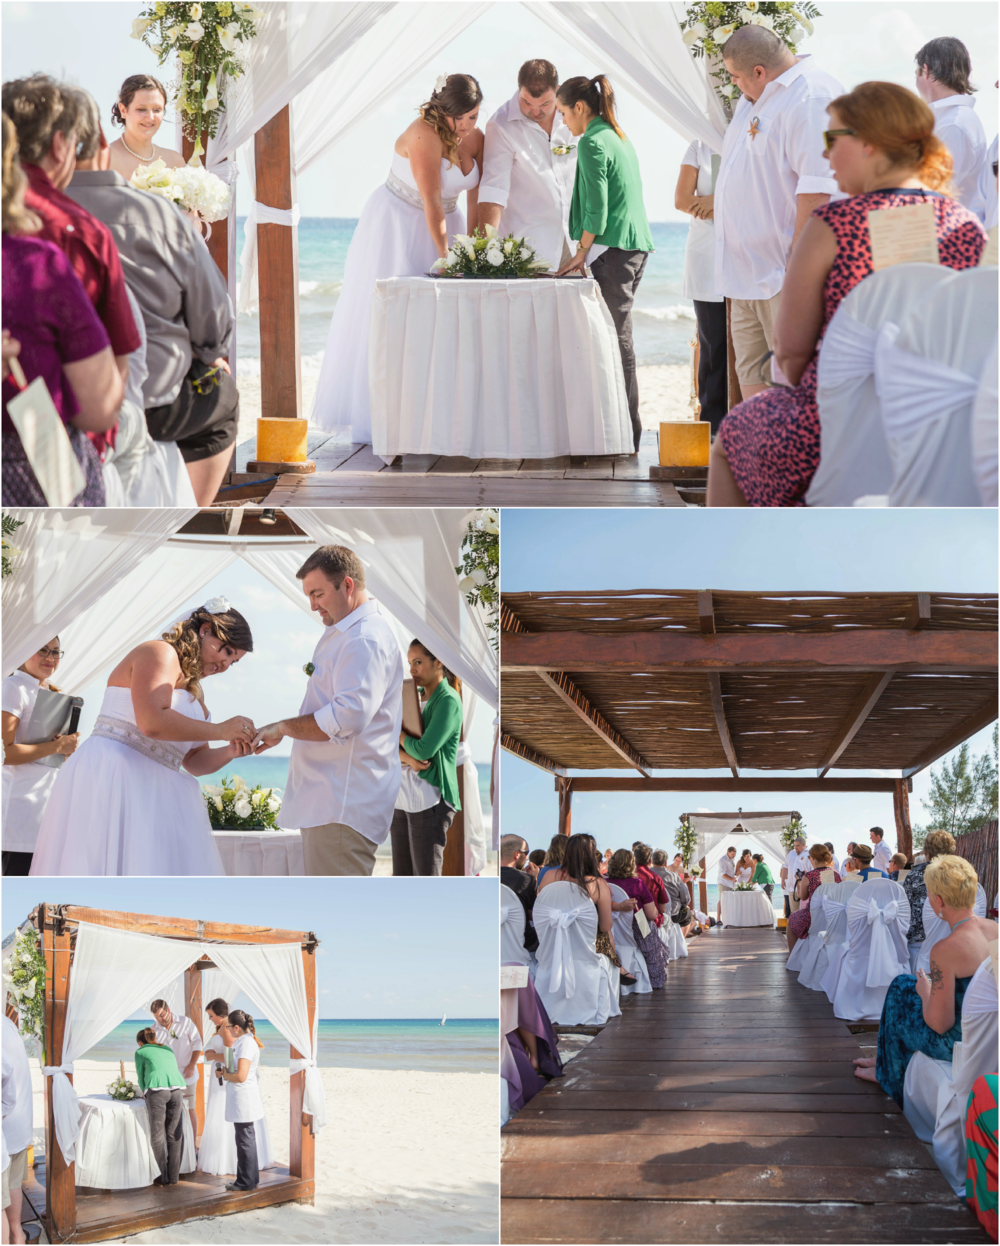 cancun_wedding20.png